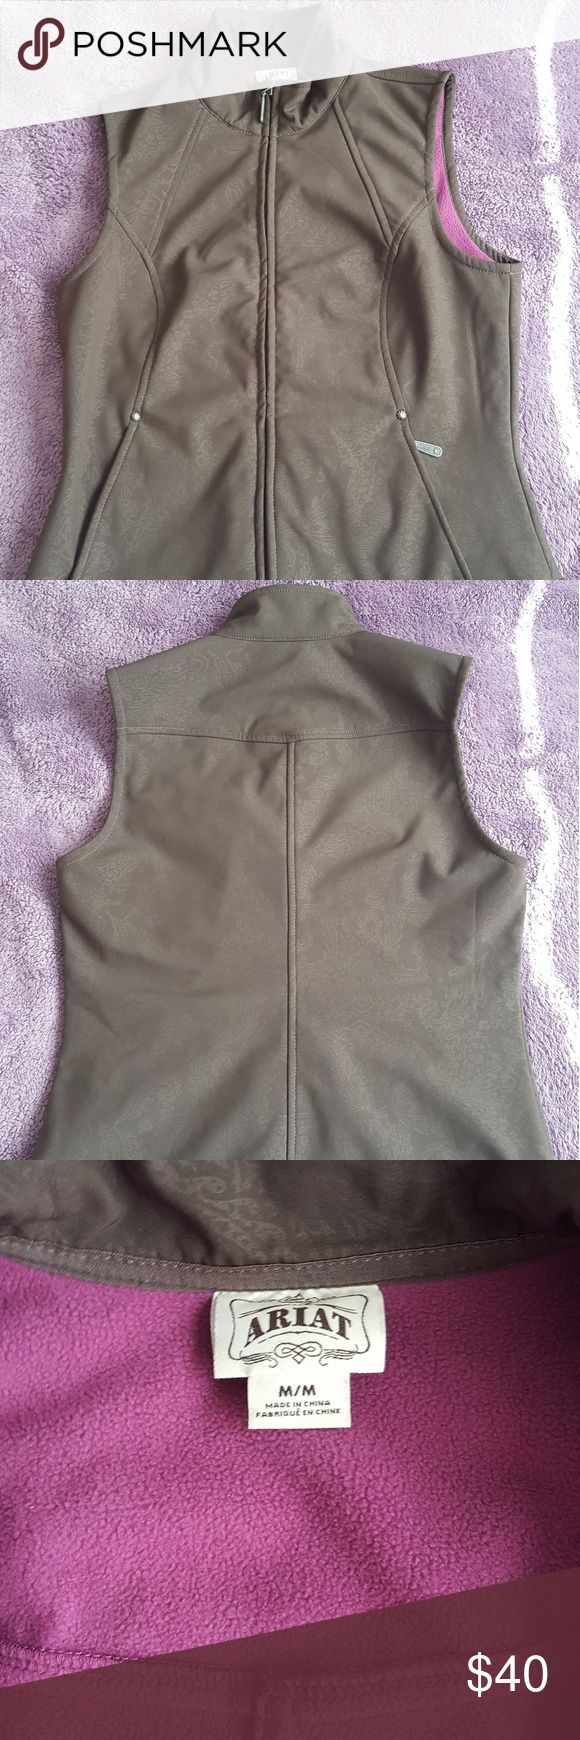 Ariat Floral Vest Size medium, worn once, like new condition Ariat Jackets & Coats Vests